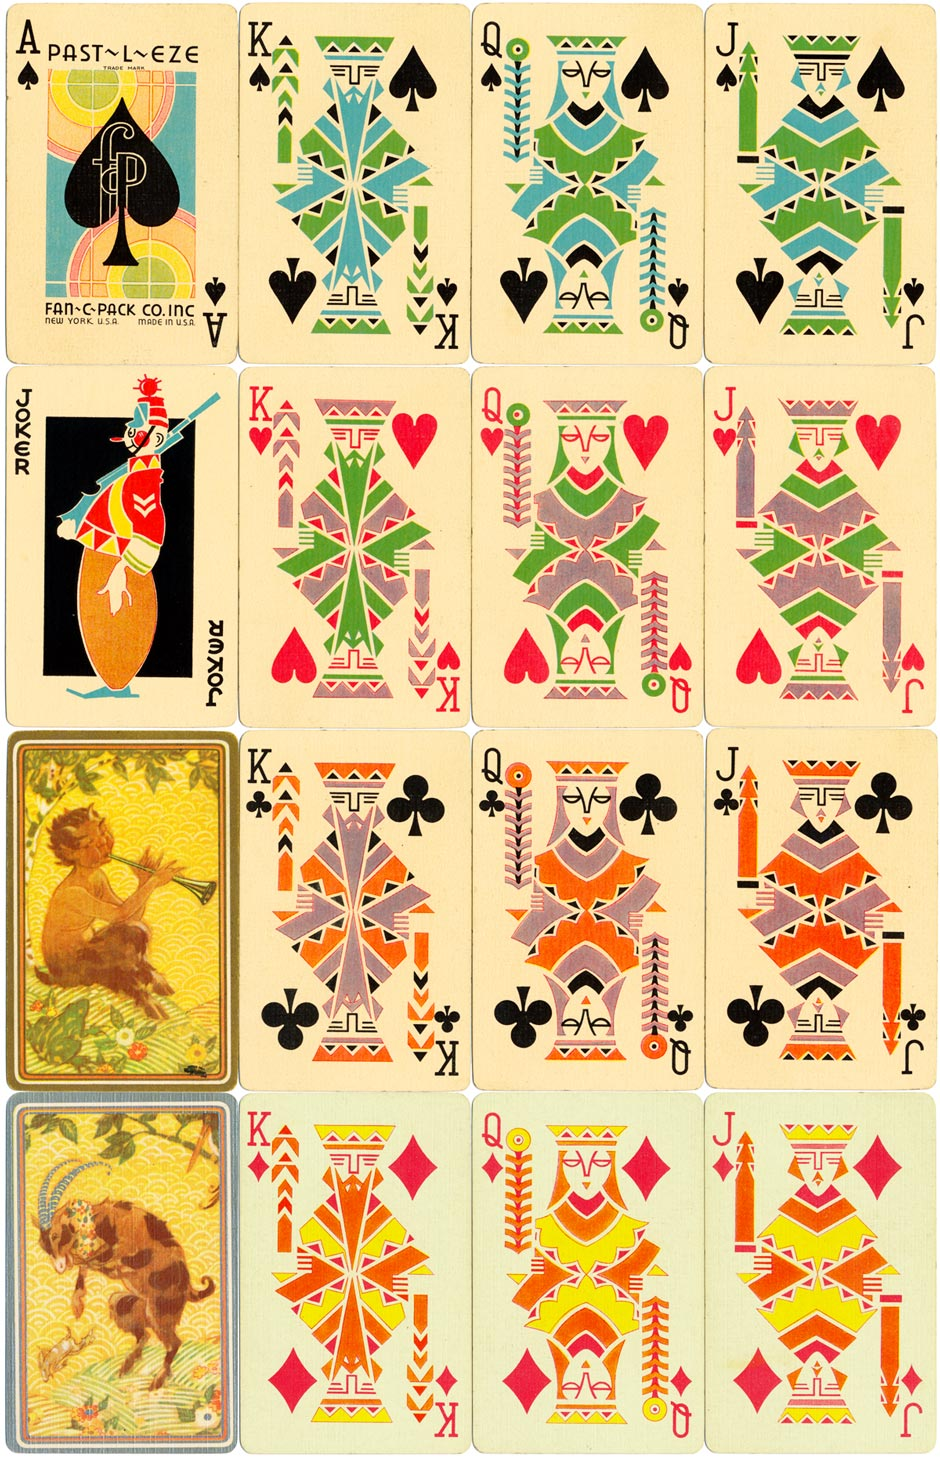 'Past-l-Eze' playing cards published by Fan-C-Pack Co., Inc, New York, c.1935